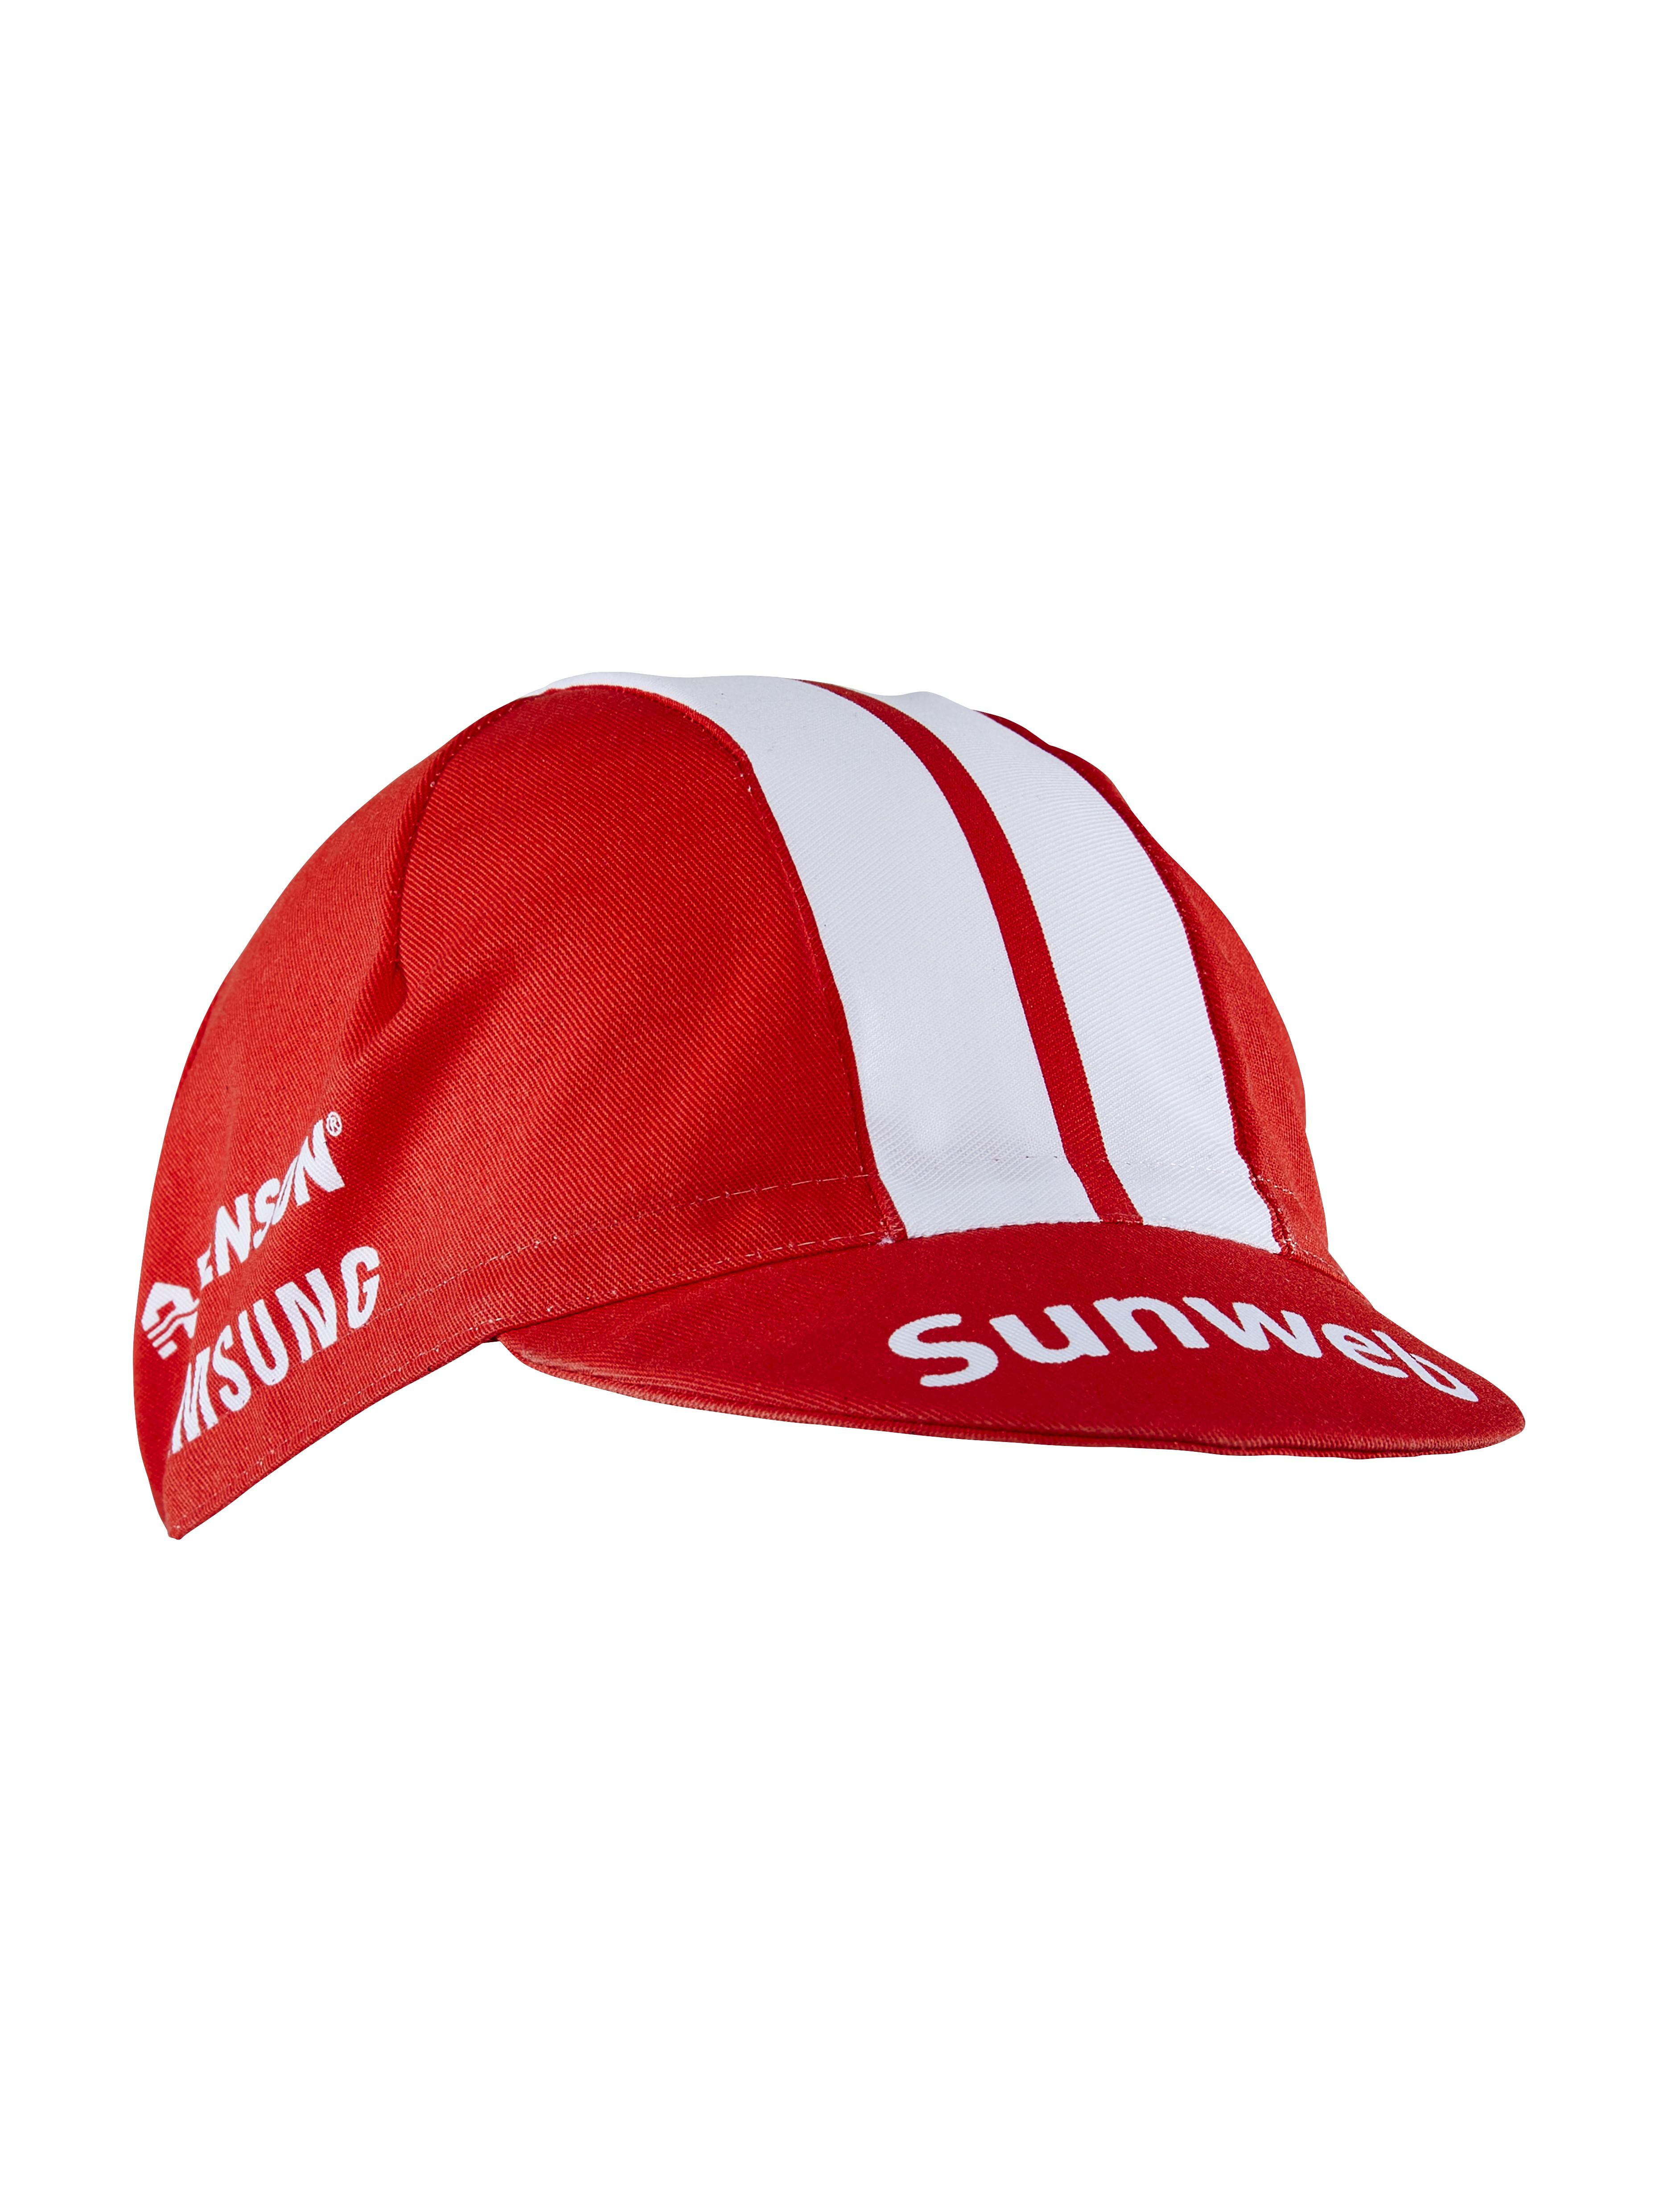 Afbeelding Craft Koerspetje Unisex Rood Wit / TEAM SUNWEB BIKE CAP TEAM SUNWEB RED